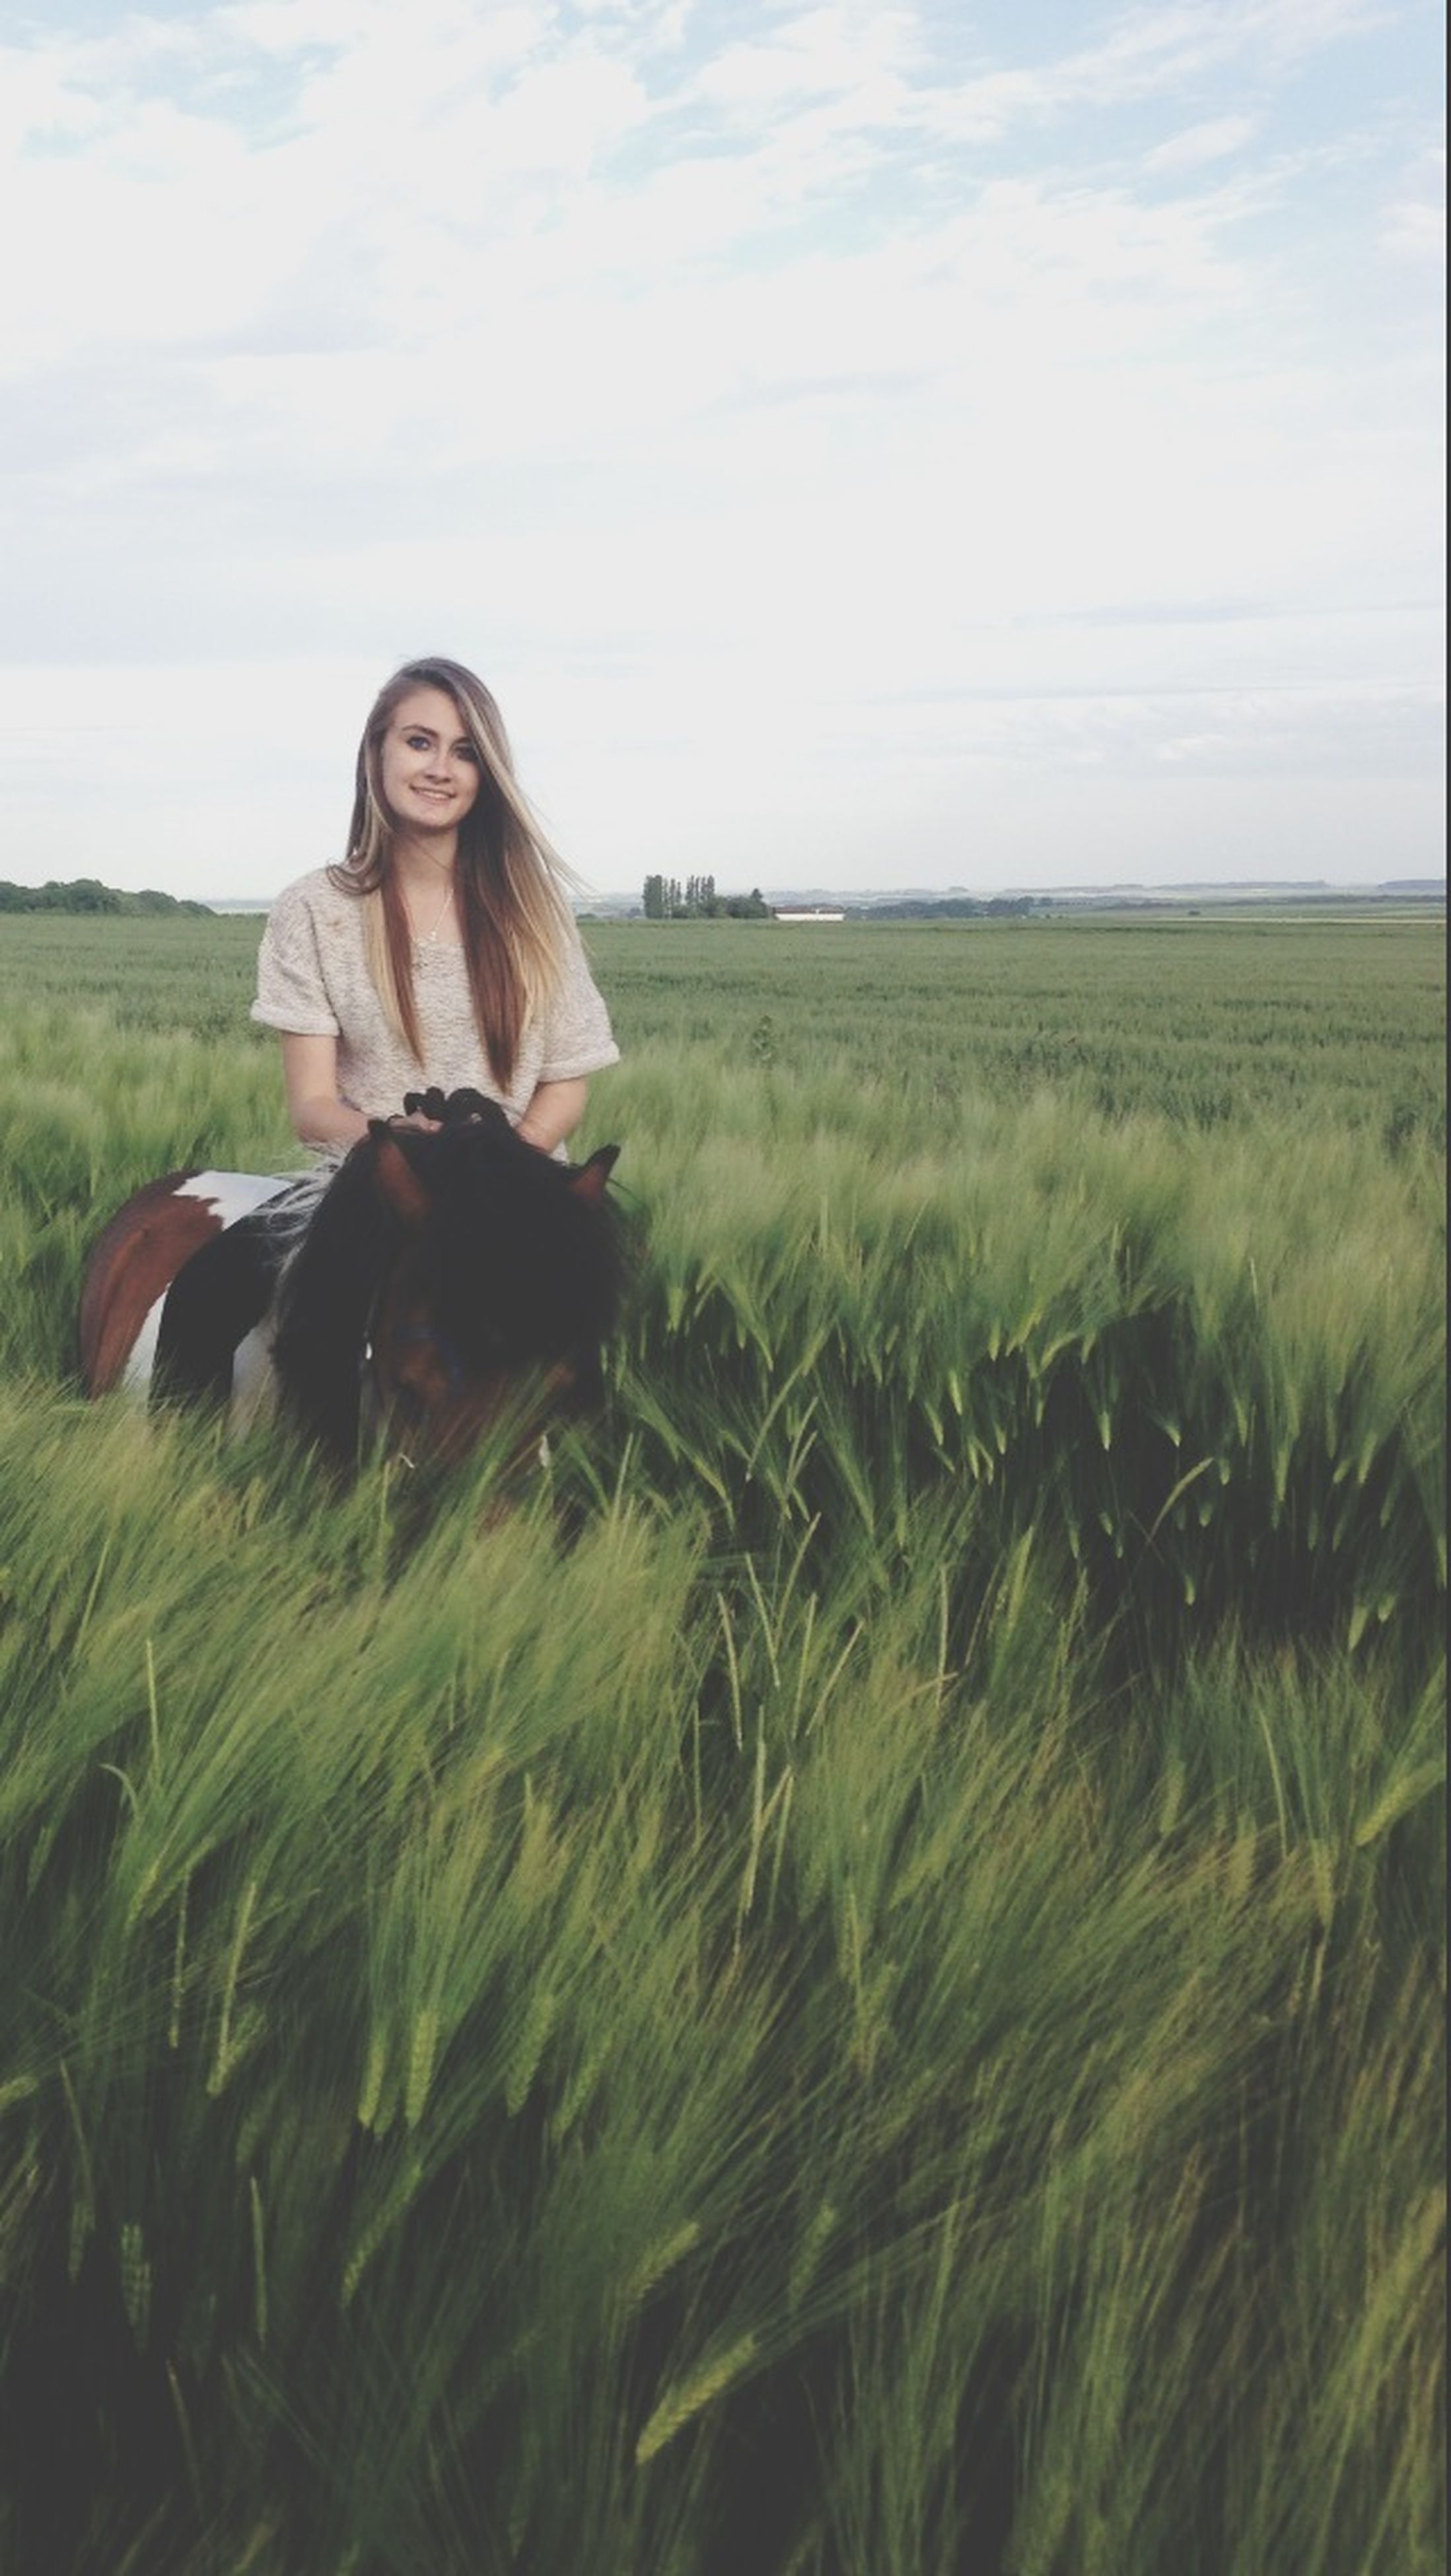 field, grass, landscape, sky, rural scene, young adult, agriculture, tranquility, tranquil scene, grassy, nature, growth, young women, farm, person, plant, beauty in nature, standing